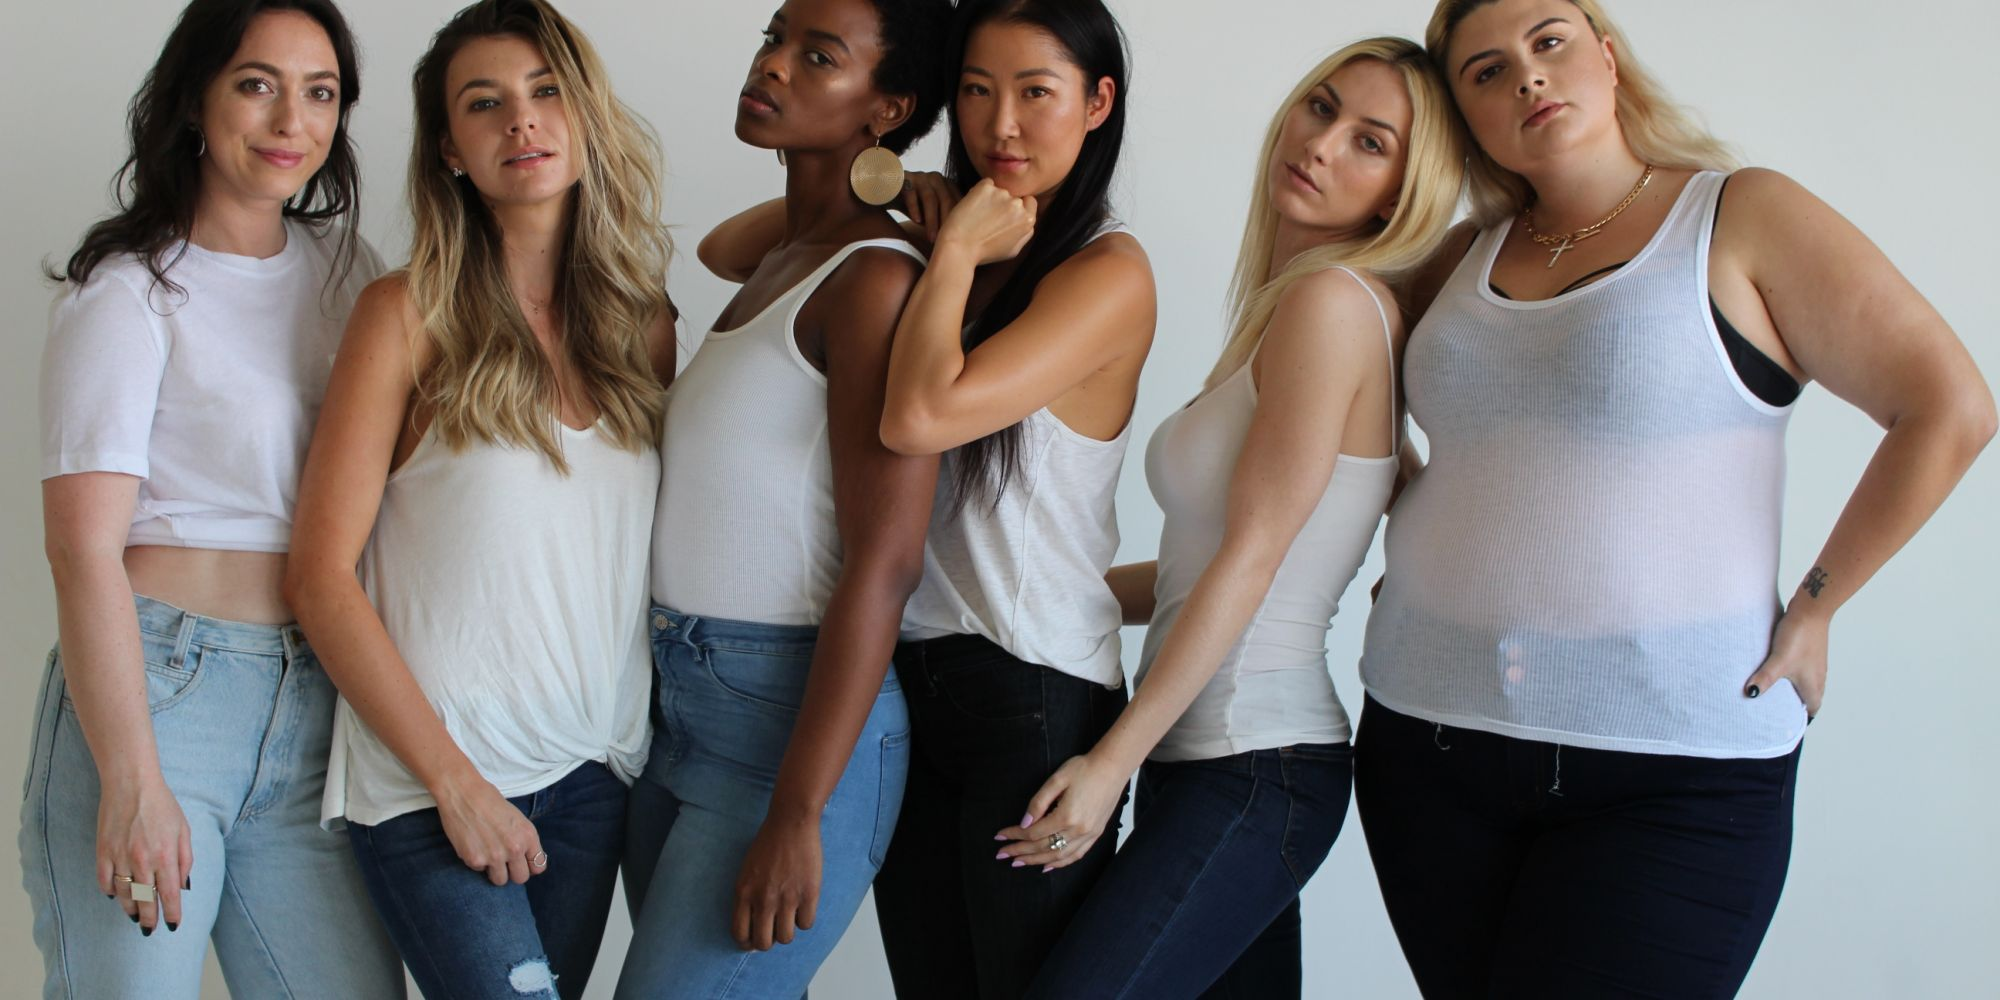 Customizable Skincare Brand Rose & Abbot's New Campaign Highlights The Individuality Of Women And Its Products For Them